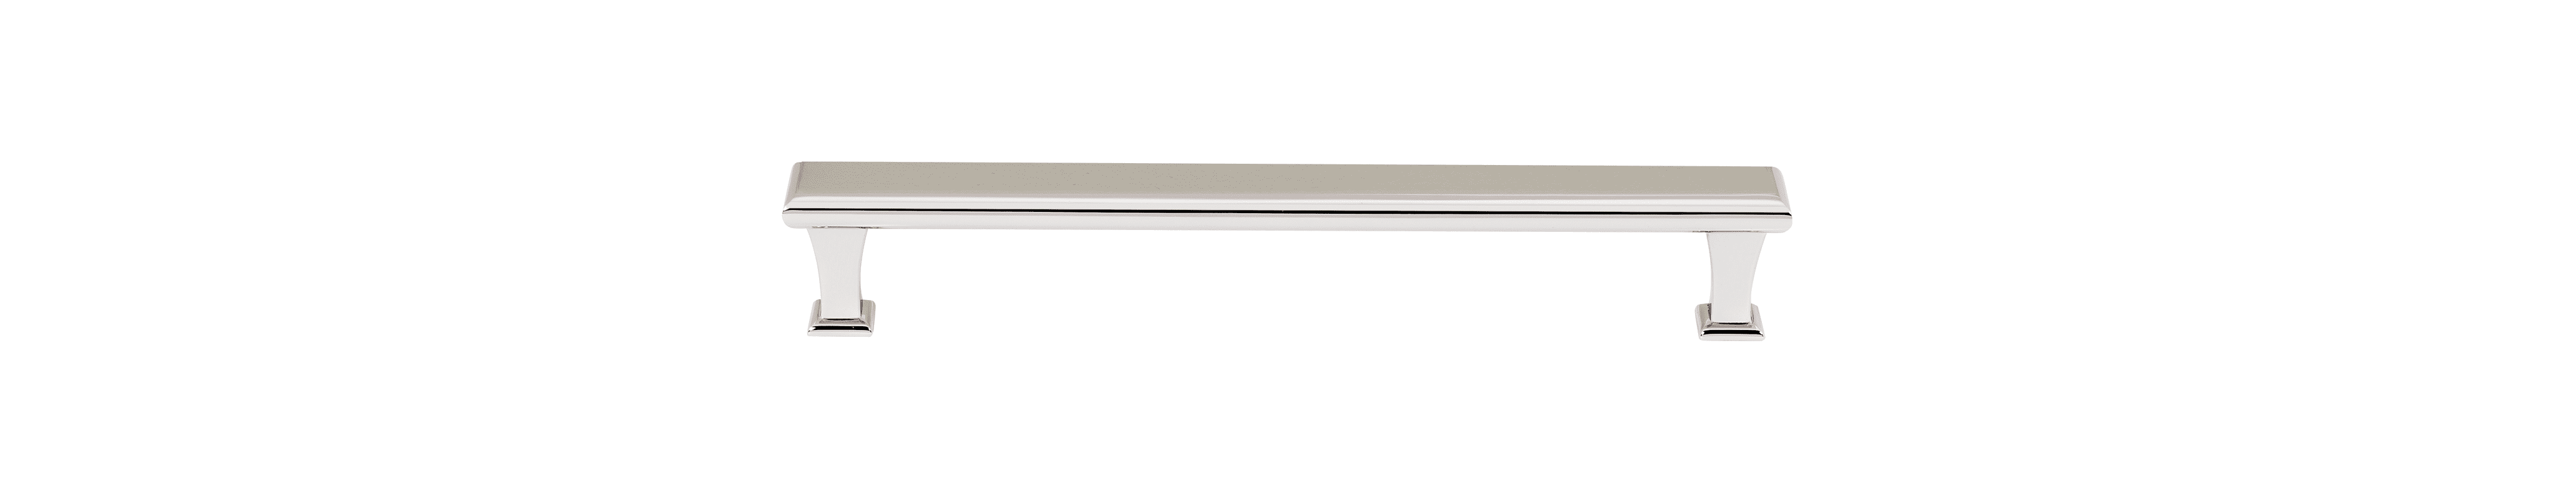 Alno A310-8 Manhattan 8 Inch Center to Center Handle Cabinet Pull ...